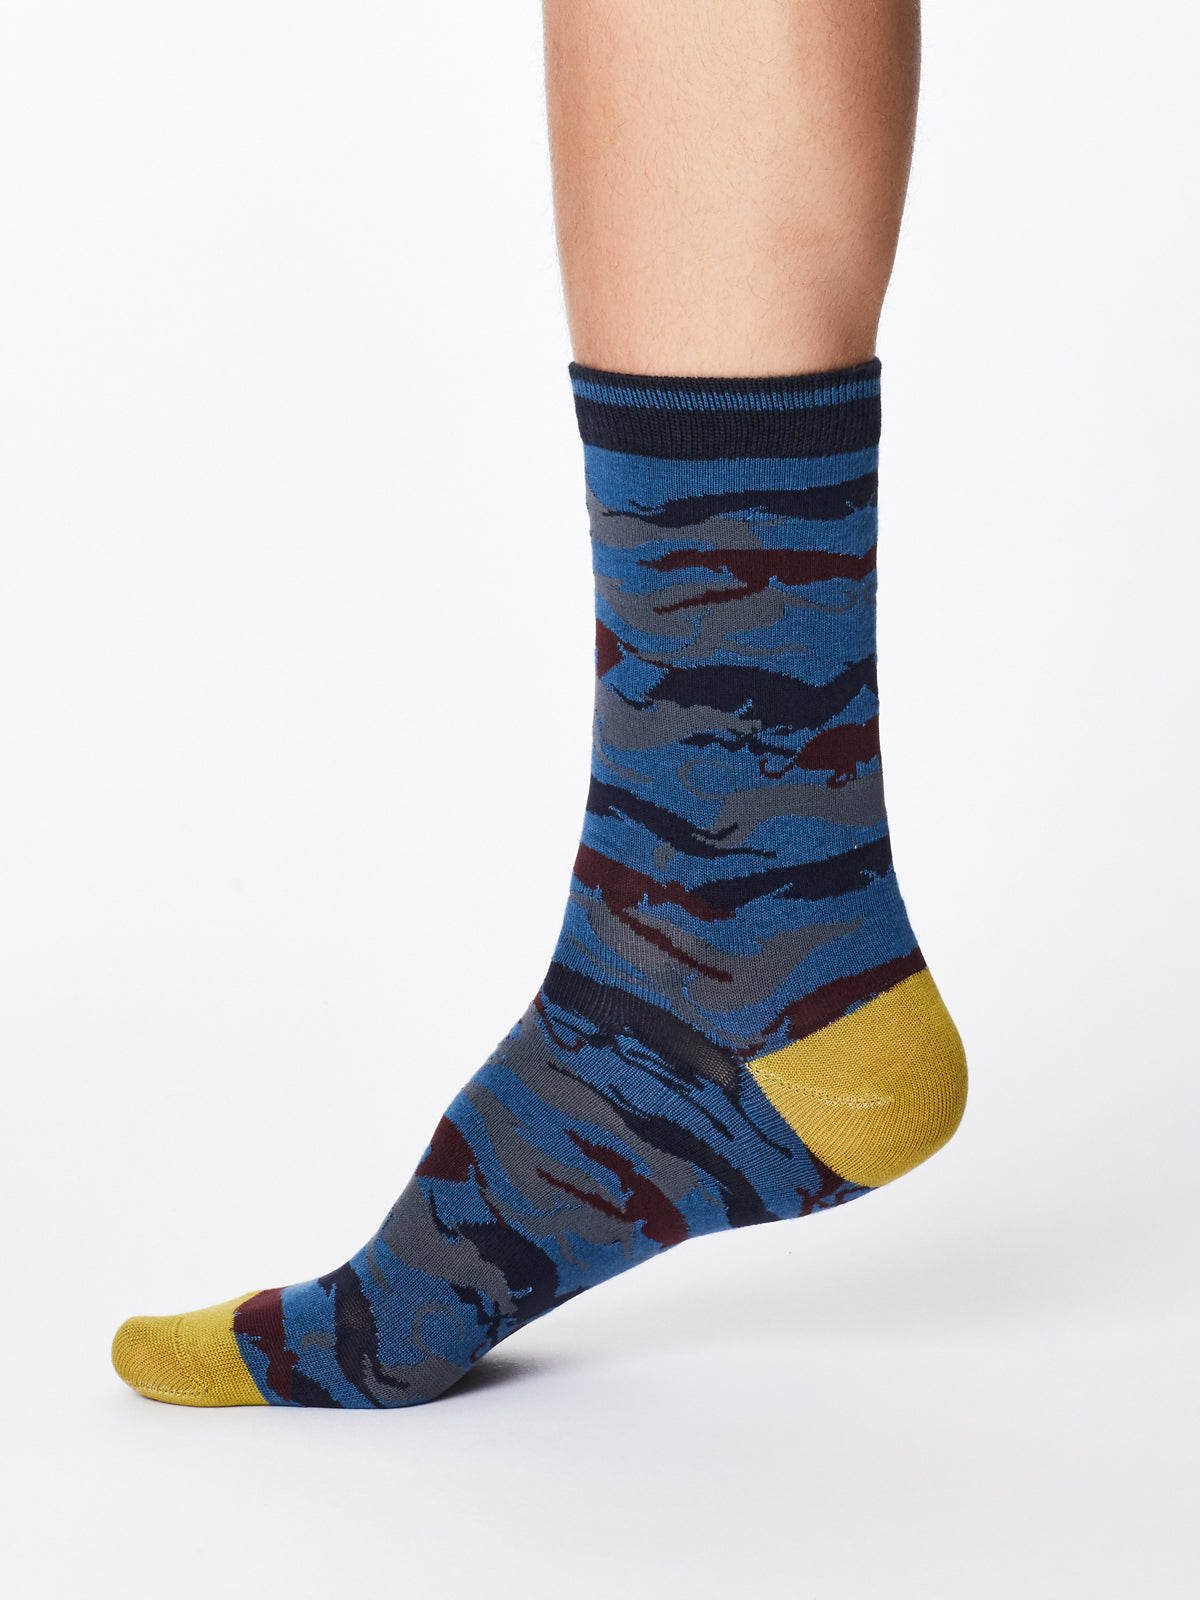 Jackie women/'s soft plain bamboo crew socks in denimBy Thought